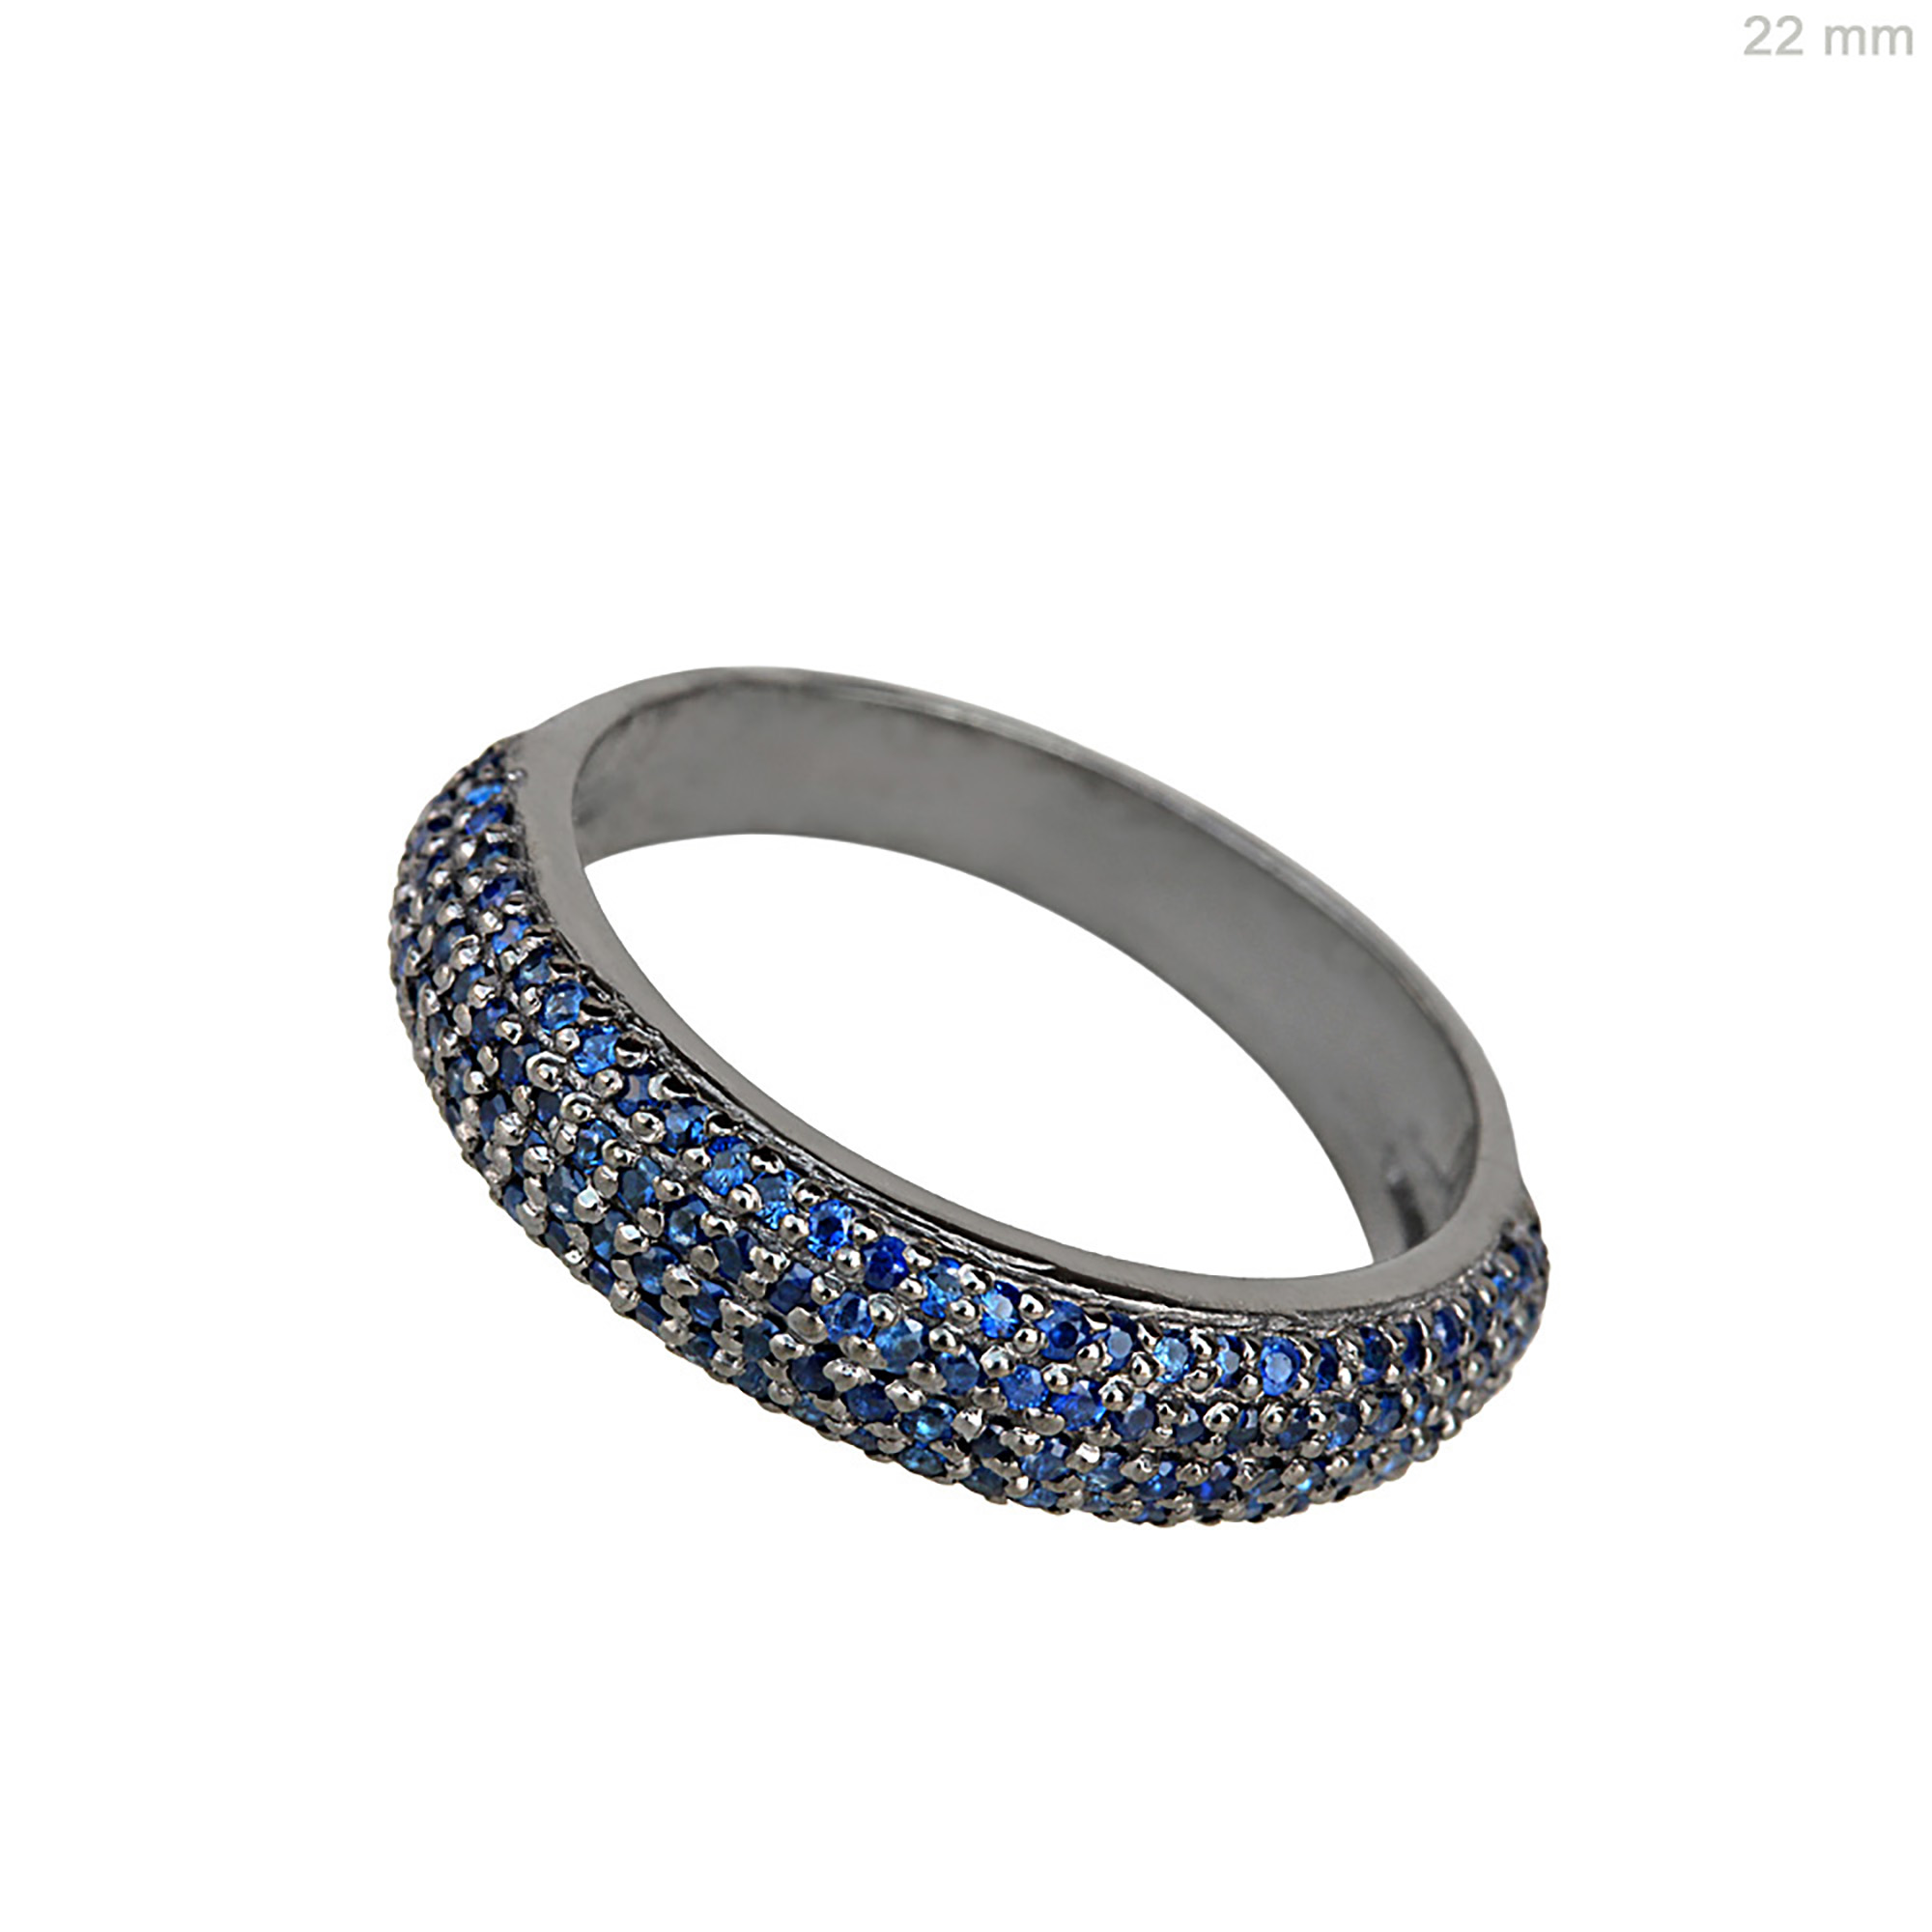 Gemstone sapphire full eternity band ring, 925 silver engagement ring